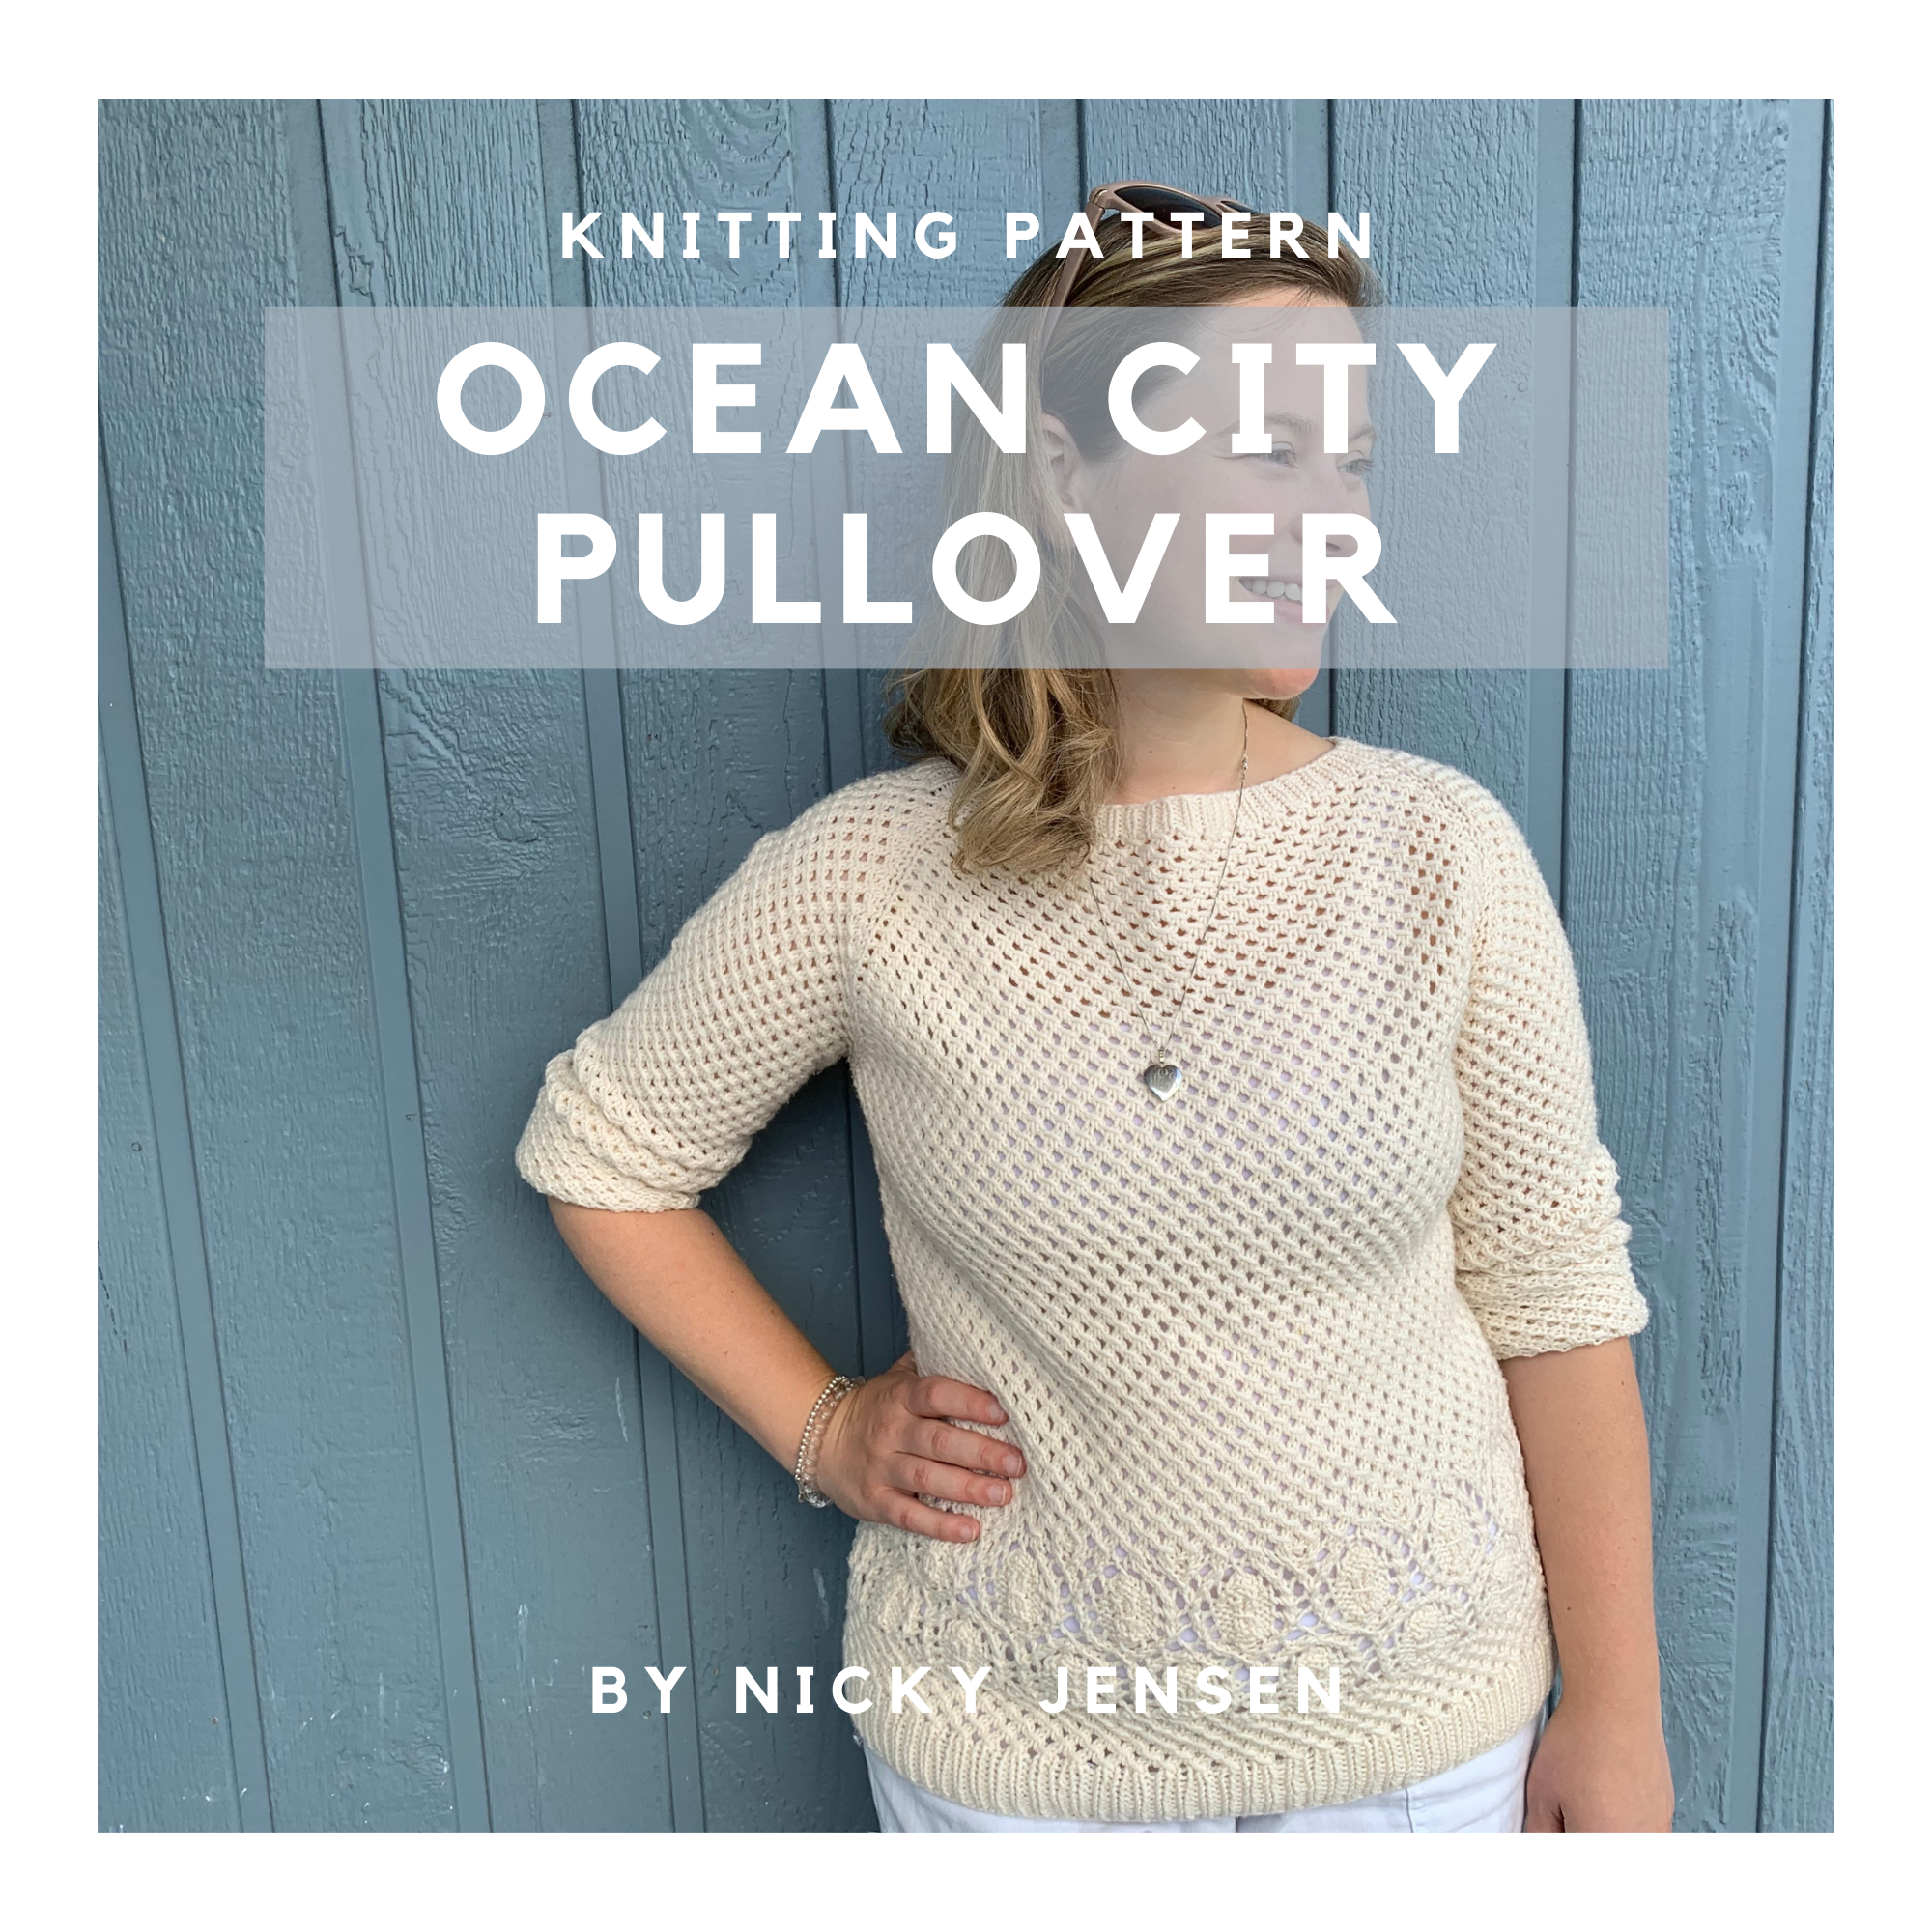 The Ocean City Pullover